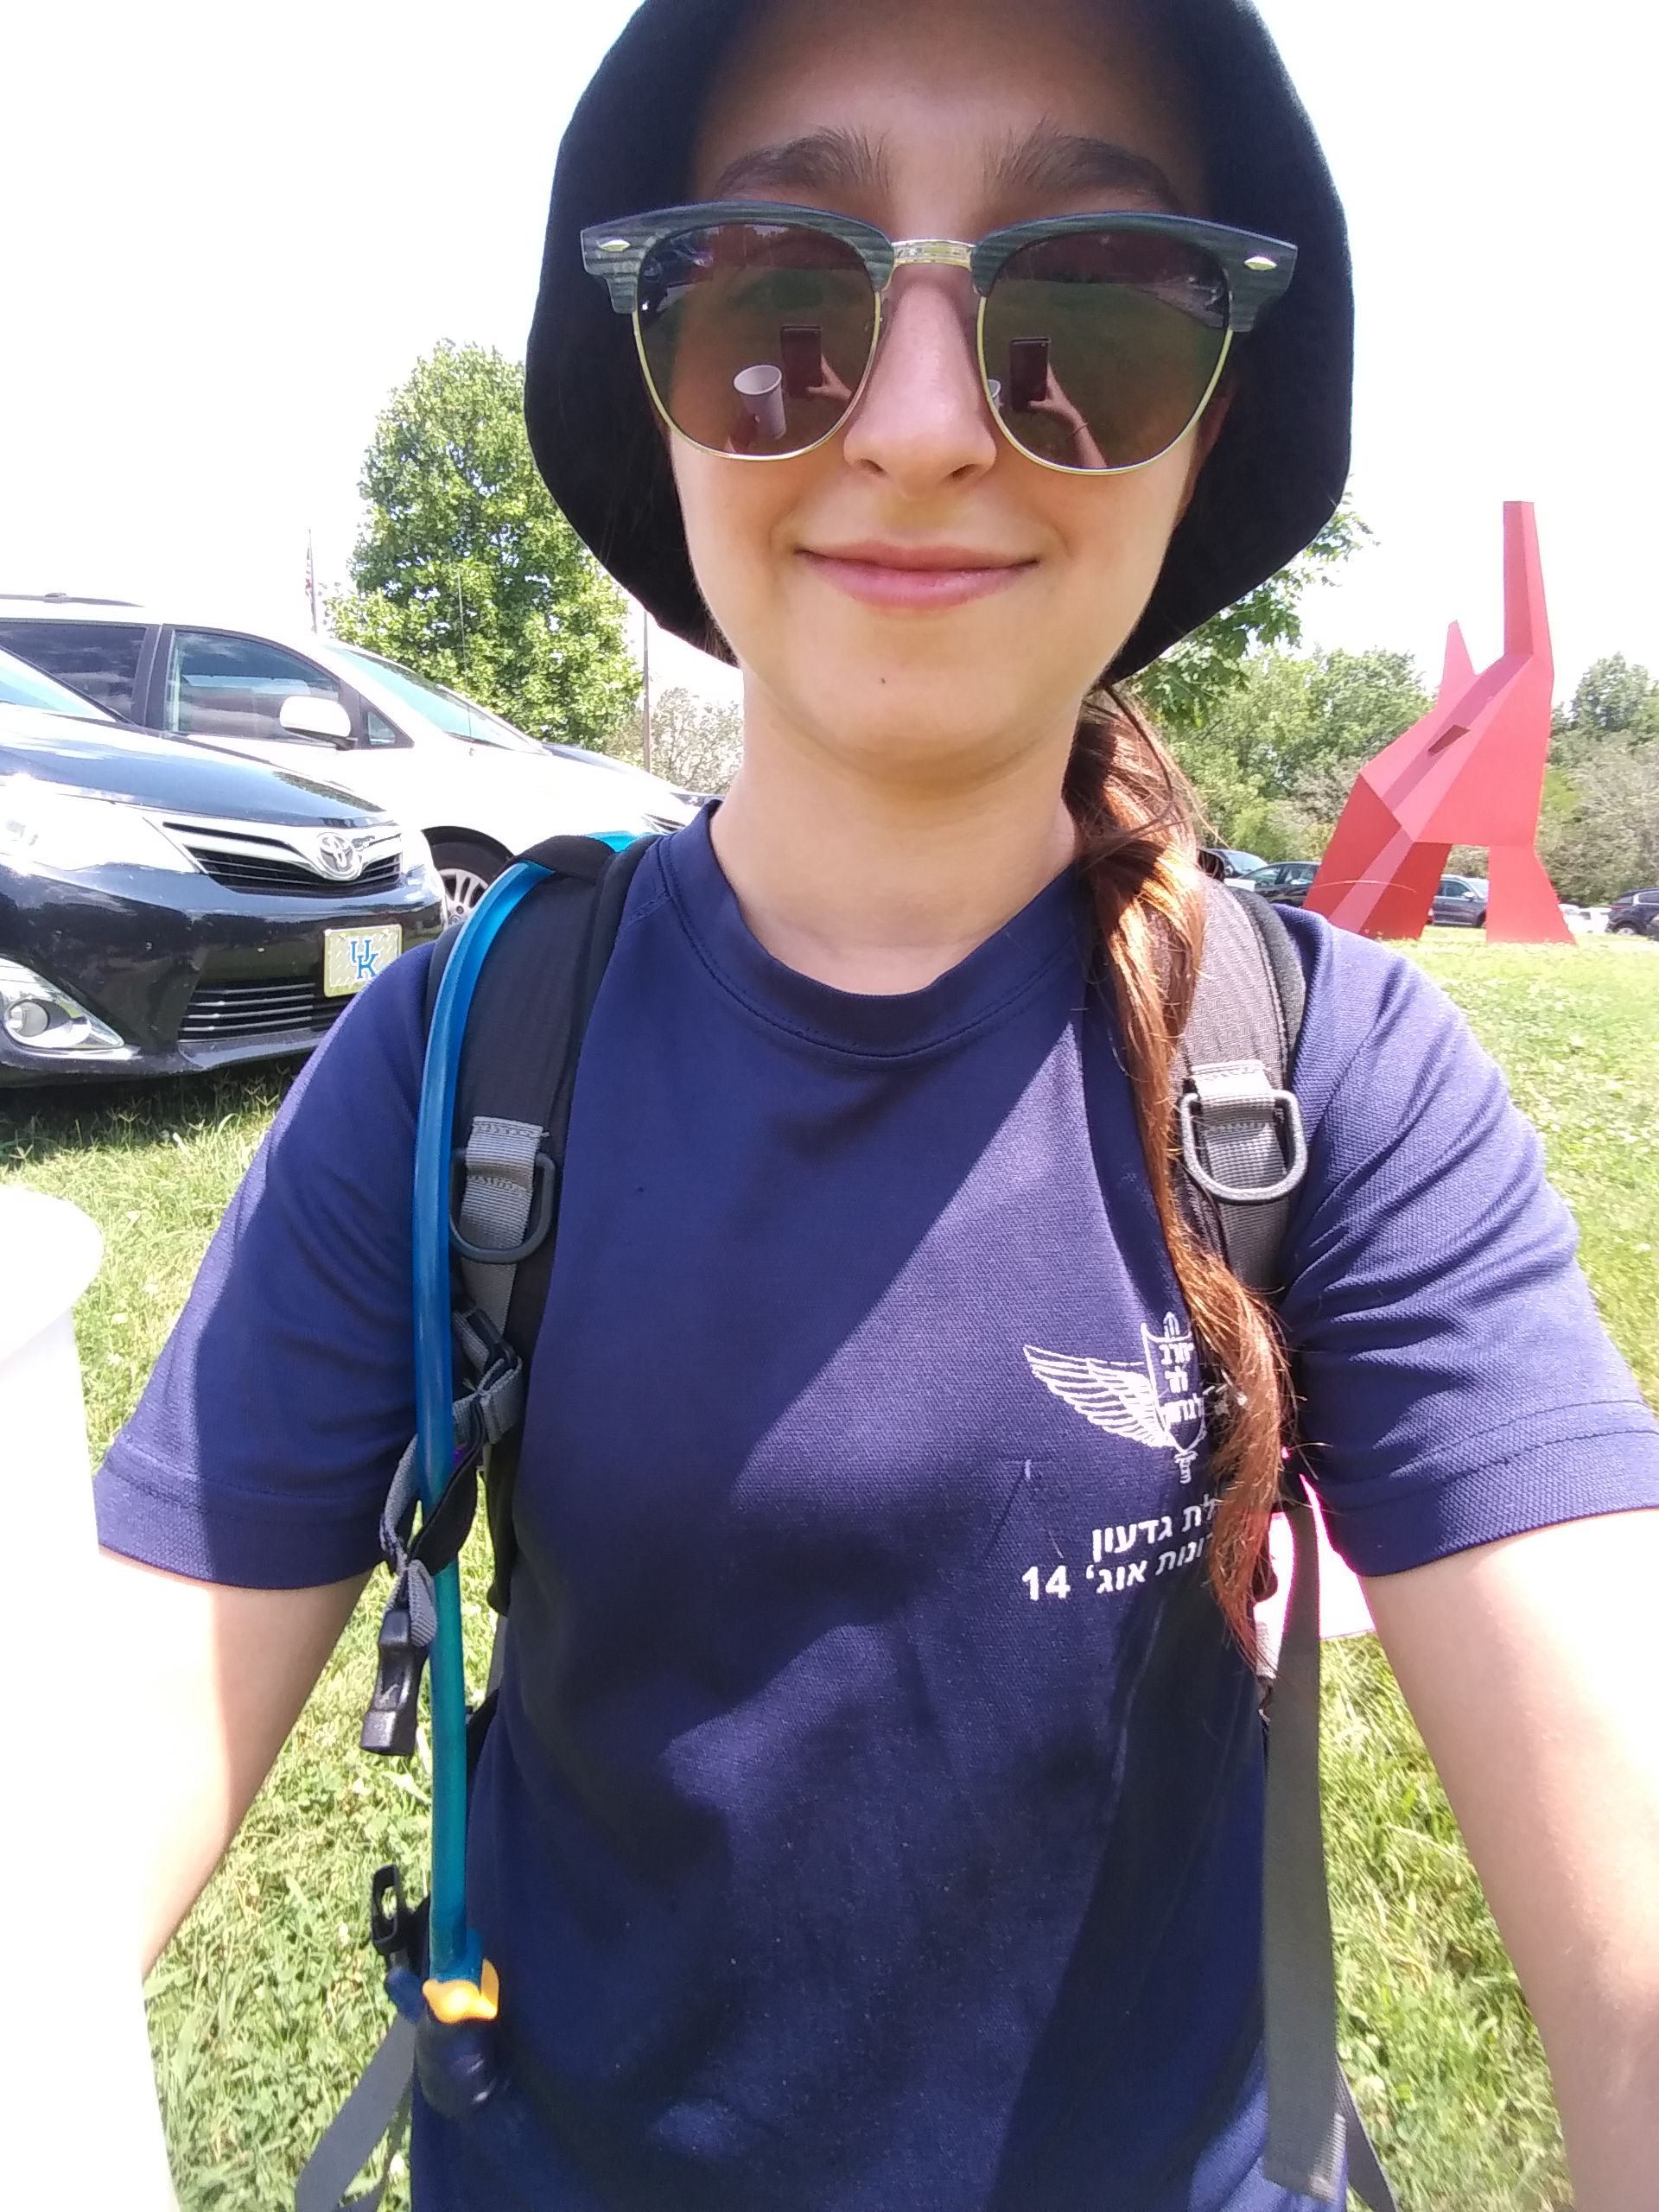 As a camp counselor last summer, I had a great excuse to use my small pack in civilization  (I was actually taking a picture of the reflection of coffee in my sunnies lol)